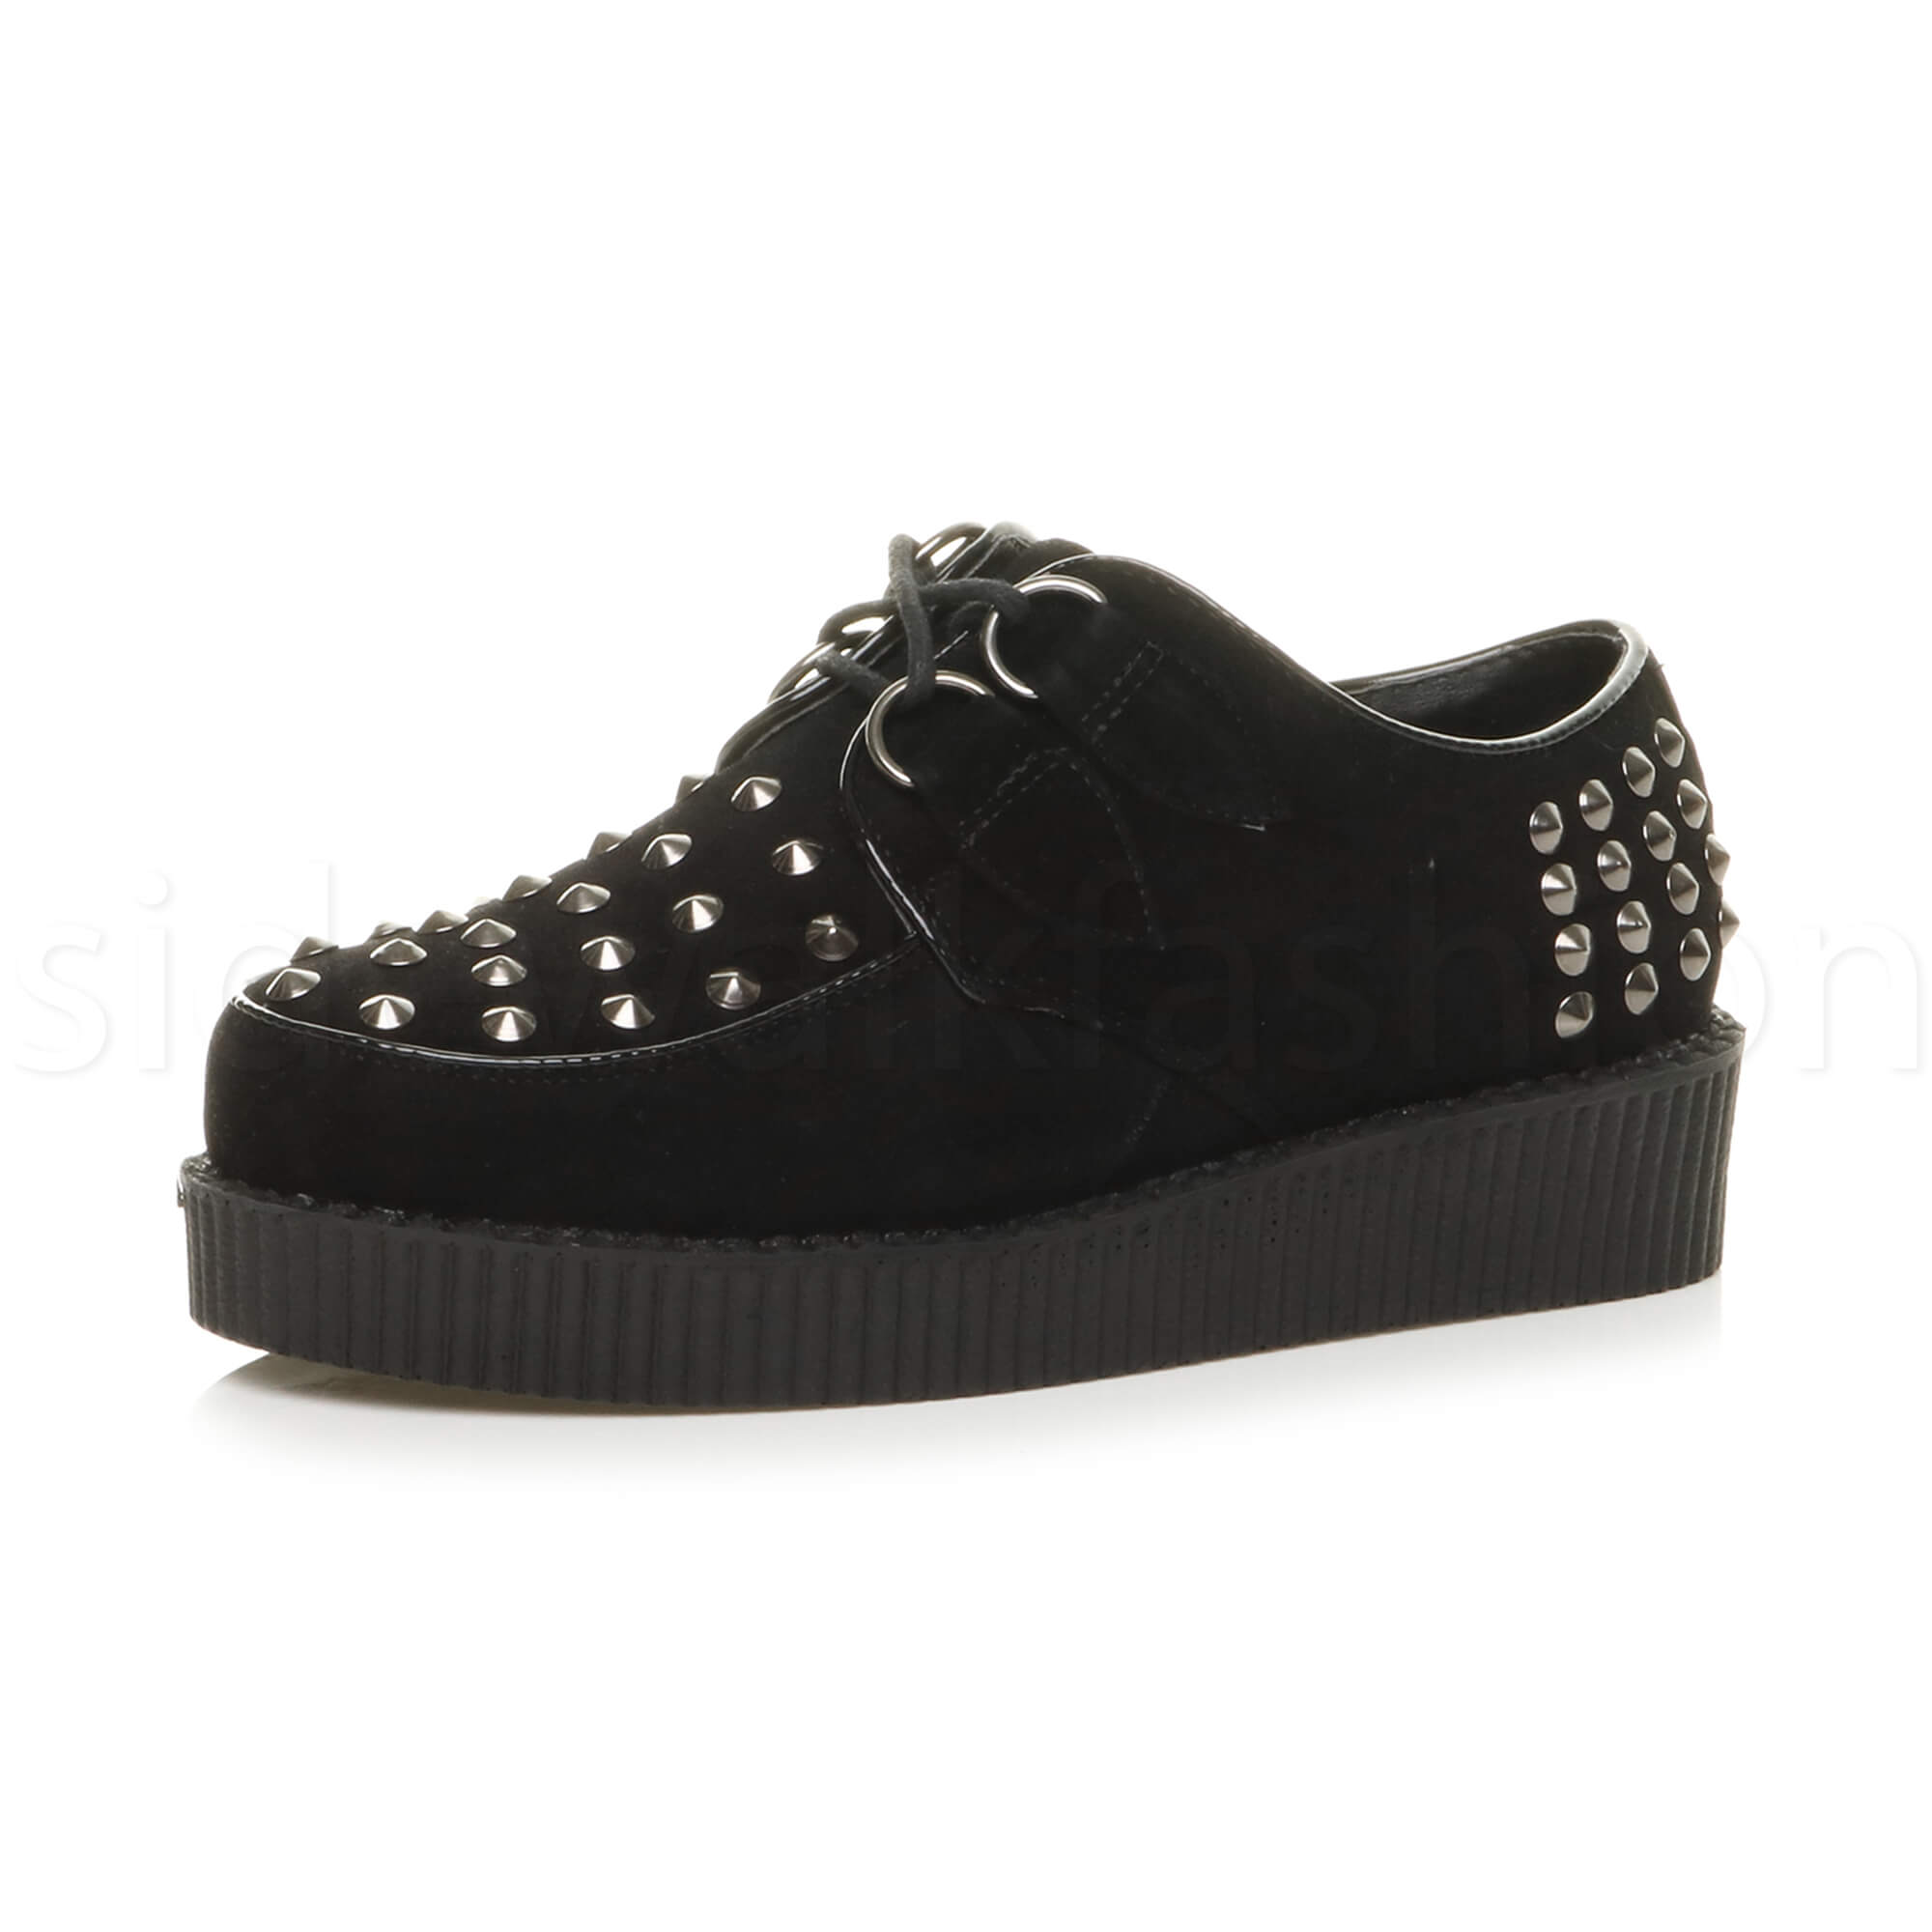 Womens-ladies-flat-platform-wedge-lace-up-goth-punk-creepers-shoes-boots-size miniatura 18